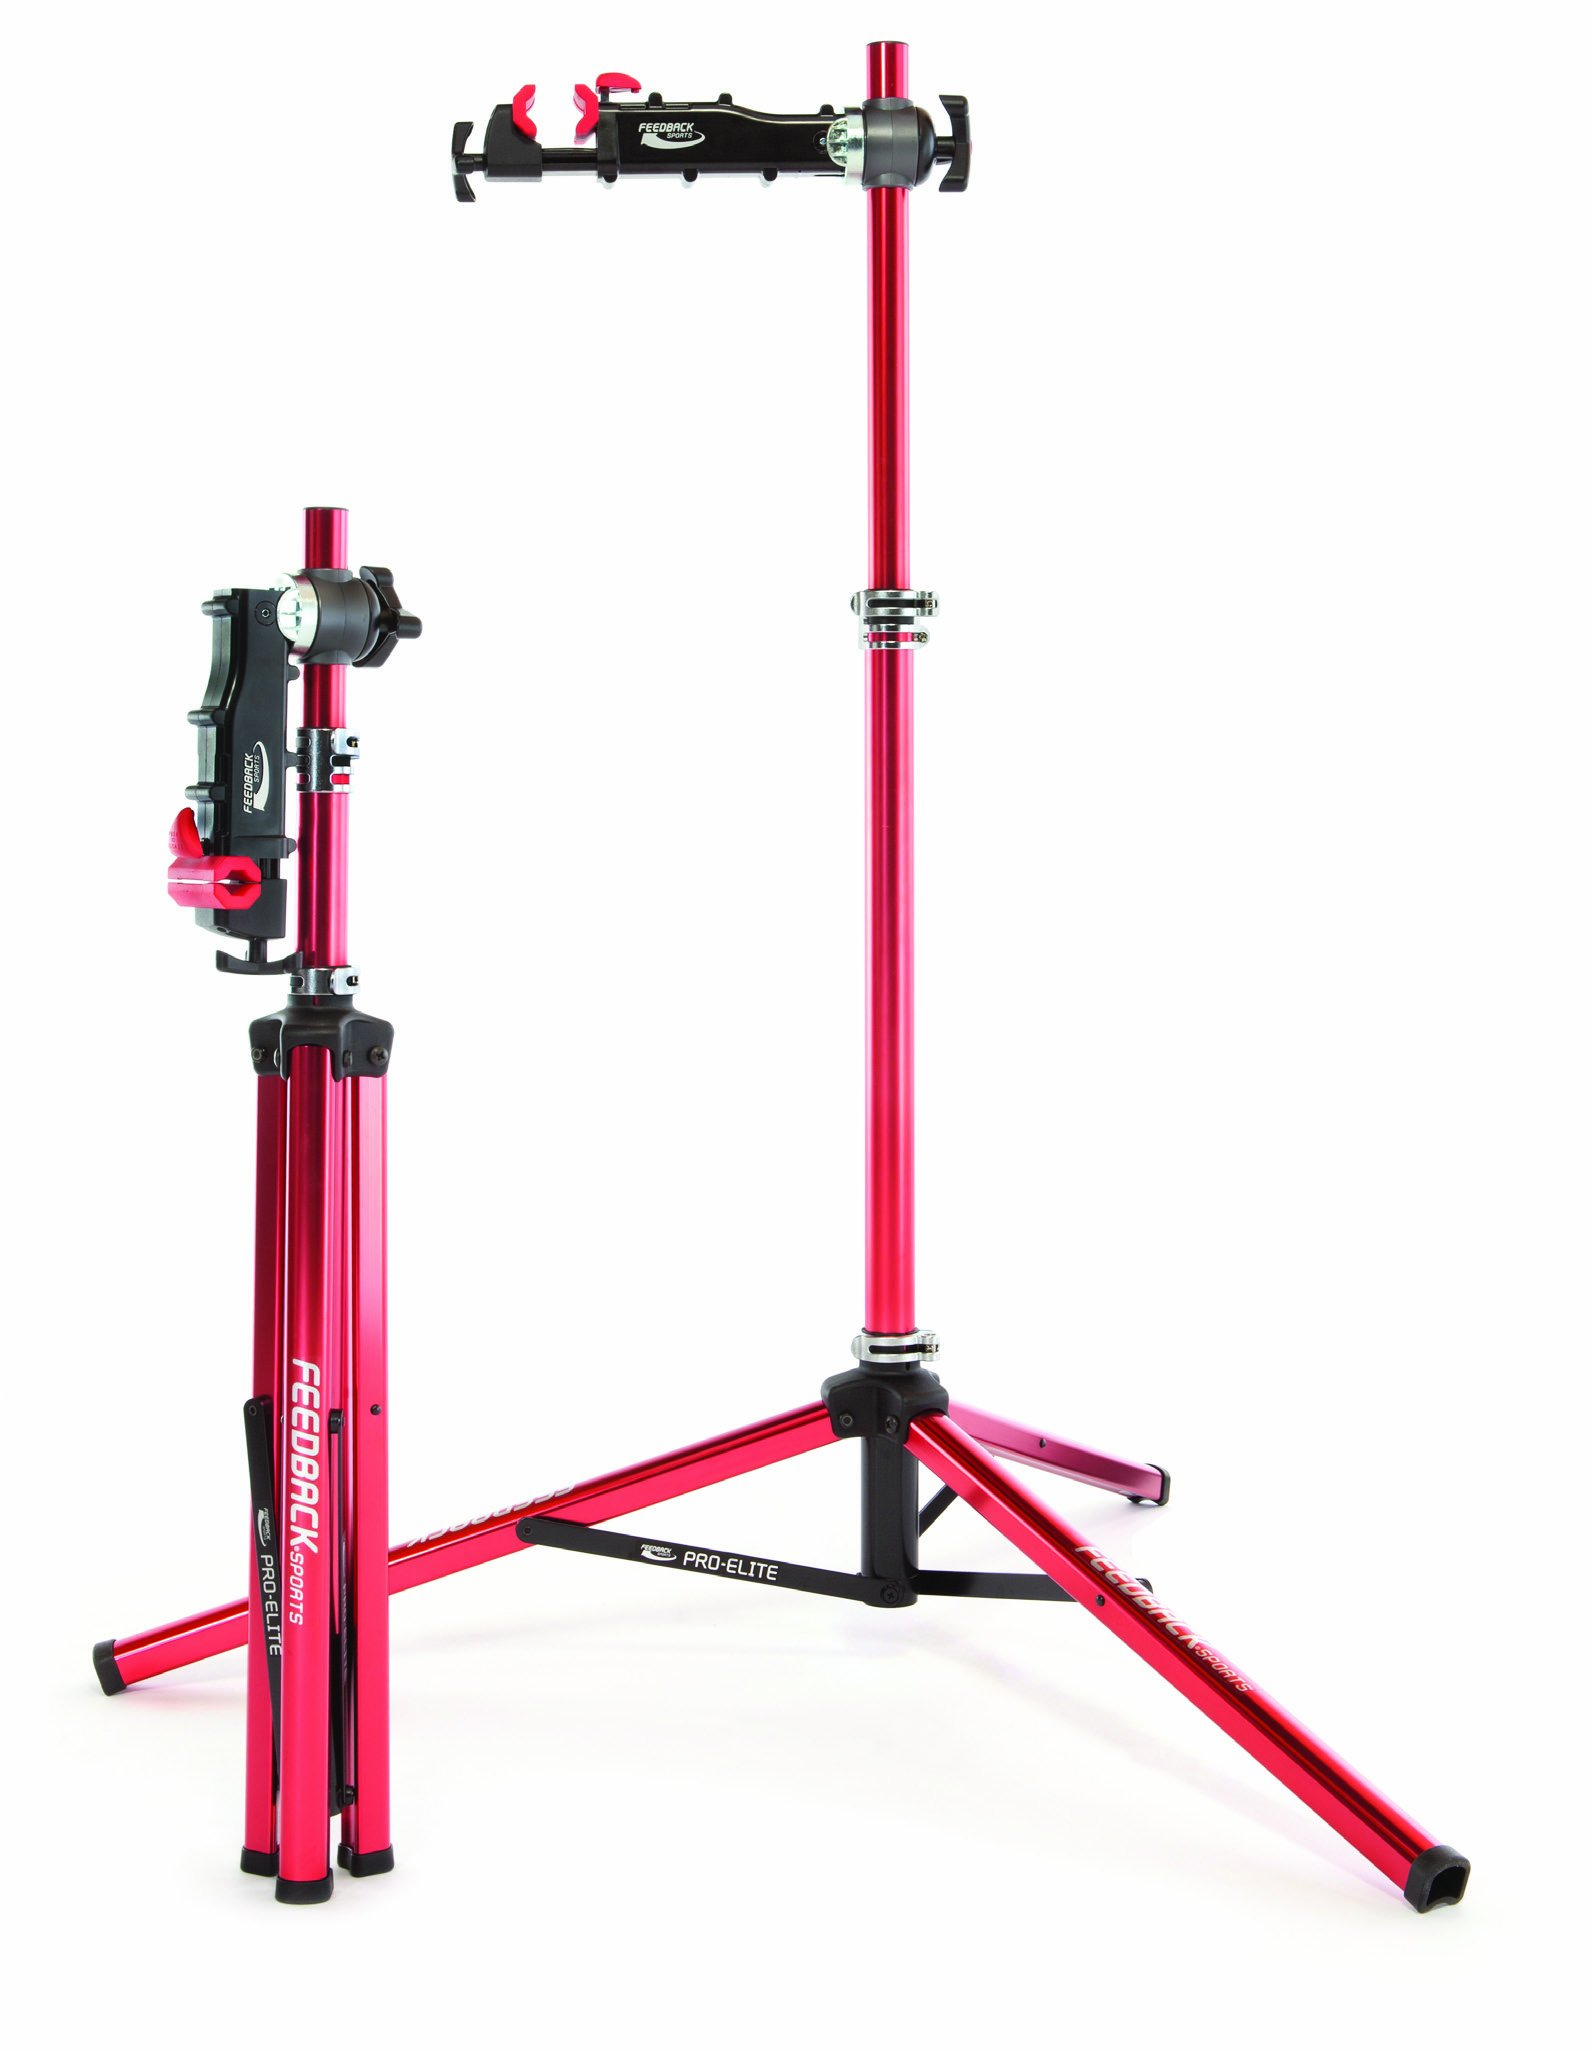 Feedback Sports Pro Elite Repair Stand (Red) by Feedback Sports (Image #1)